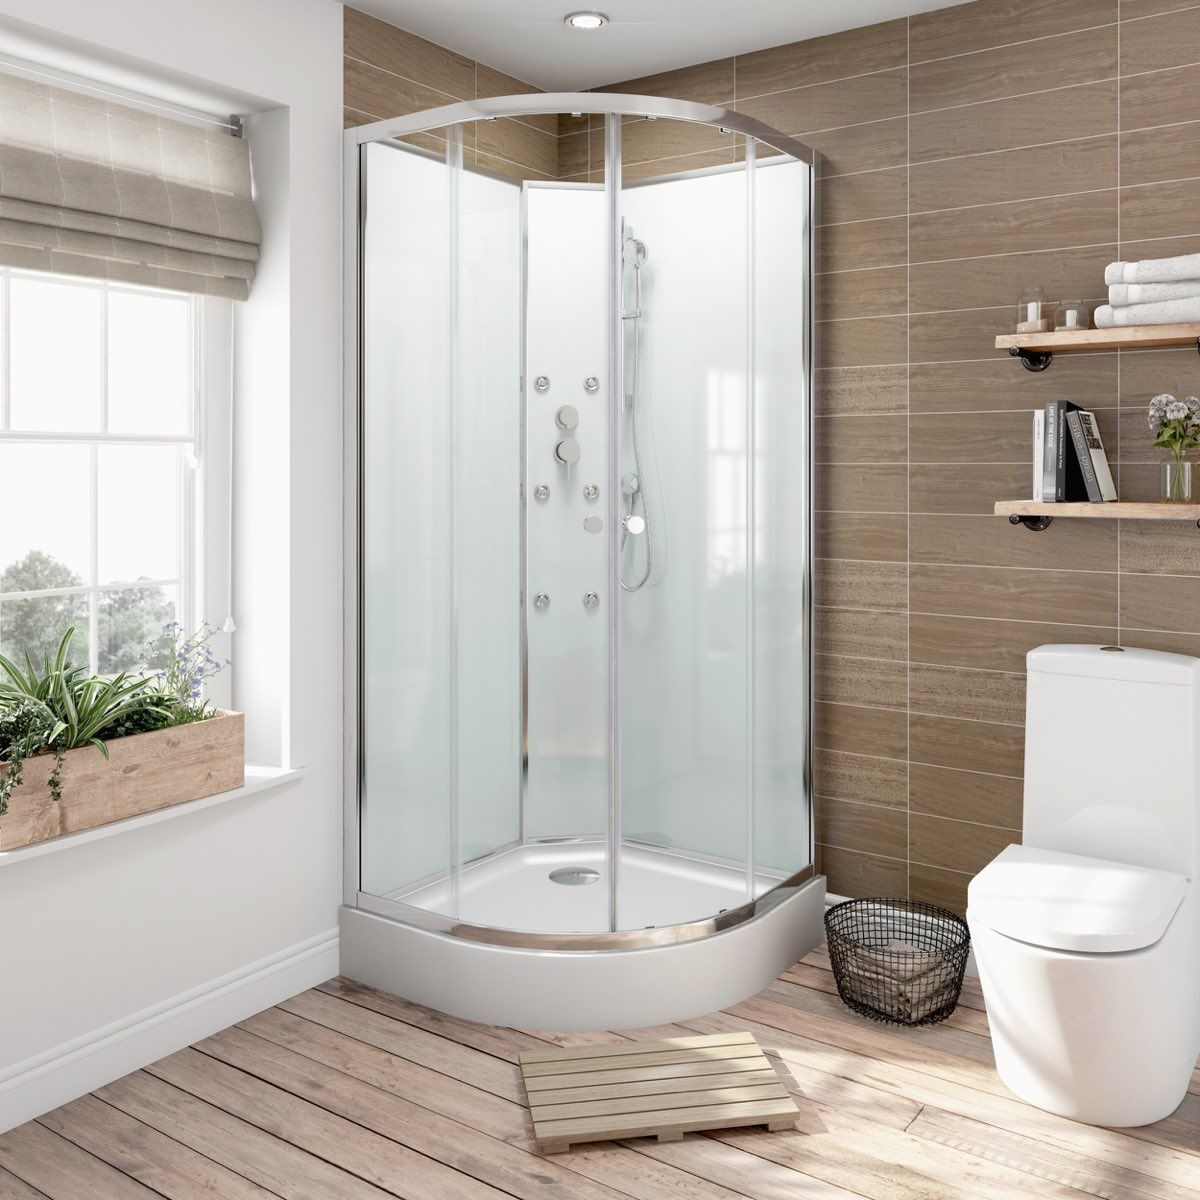 See Our 900 X 900 Glass Backed Shower Cabin Plus Other Enclosed Shower  Units At VictoriaPlum